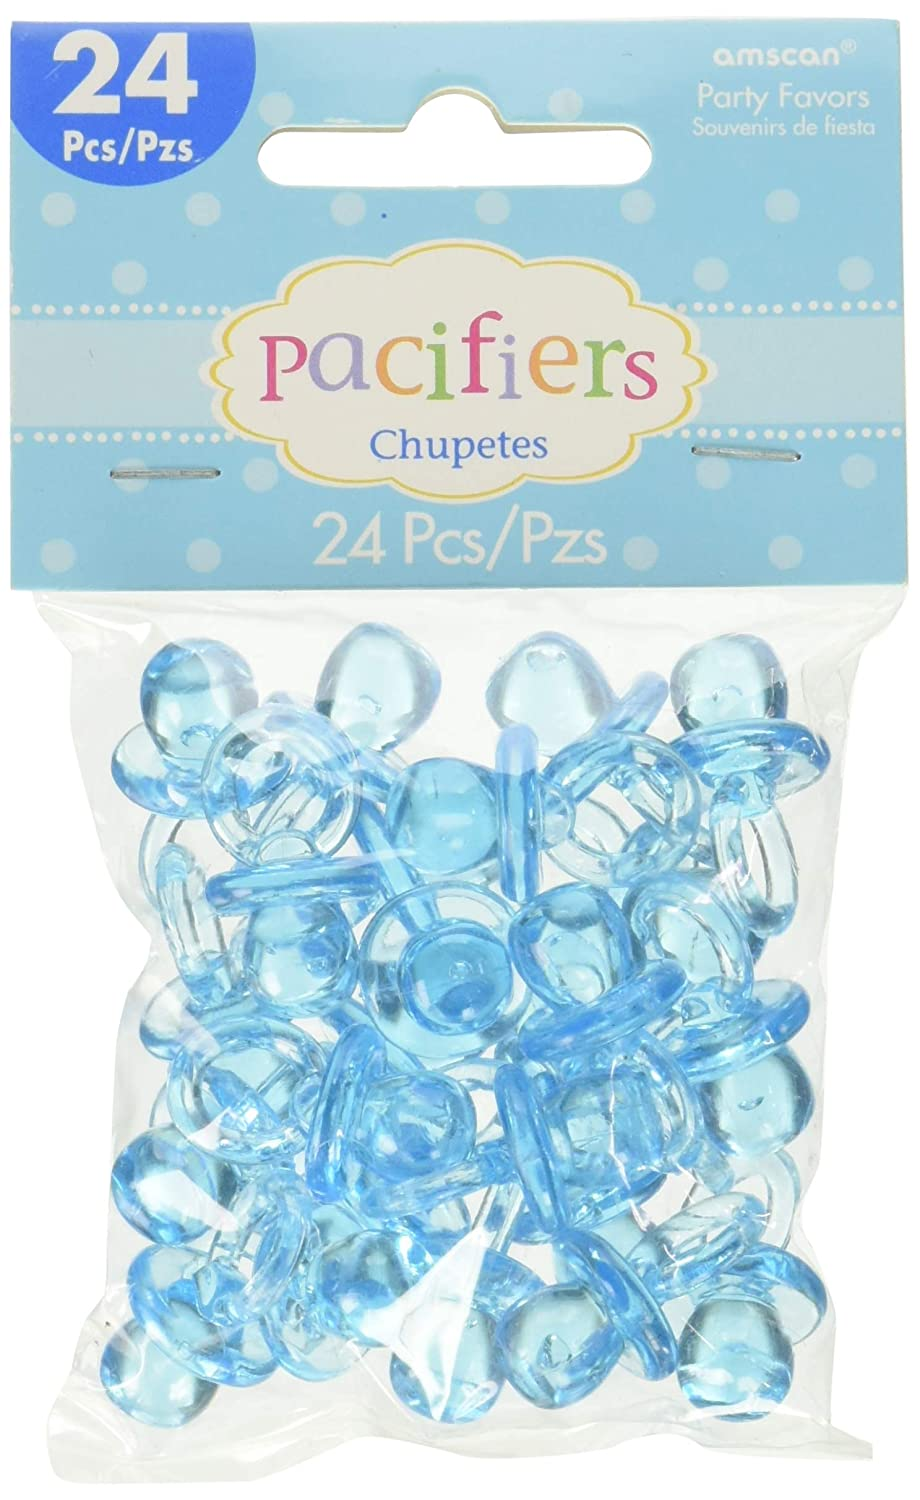 Amazon.com: Blue Pacifier Baby Shower Favor Charms 24ct: Toys & Games